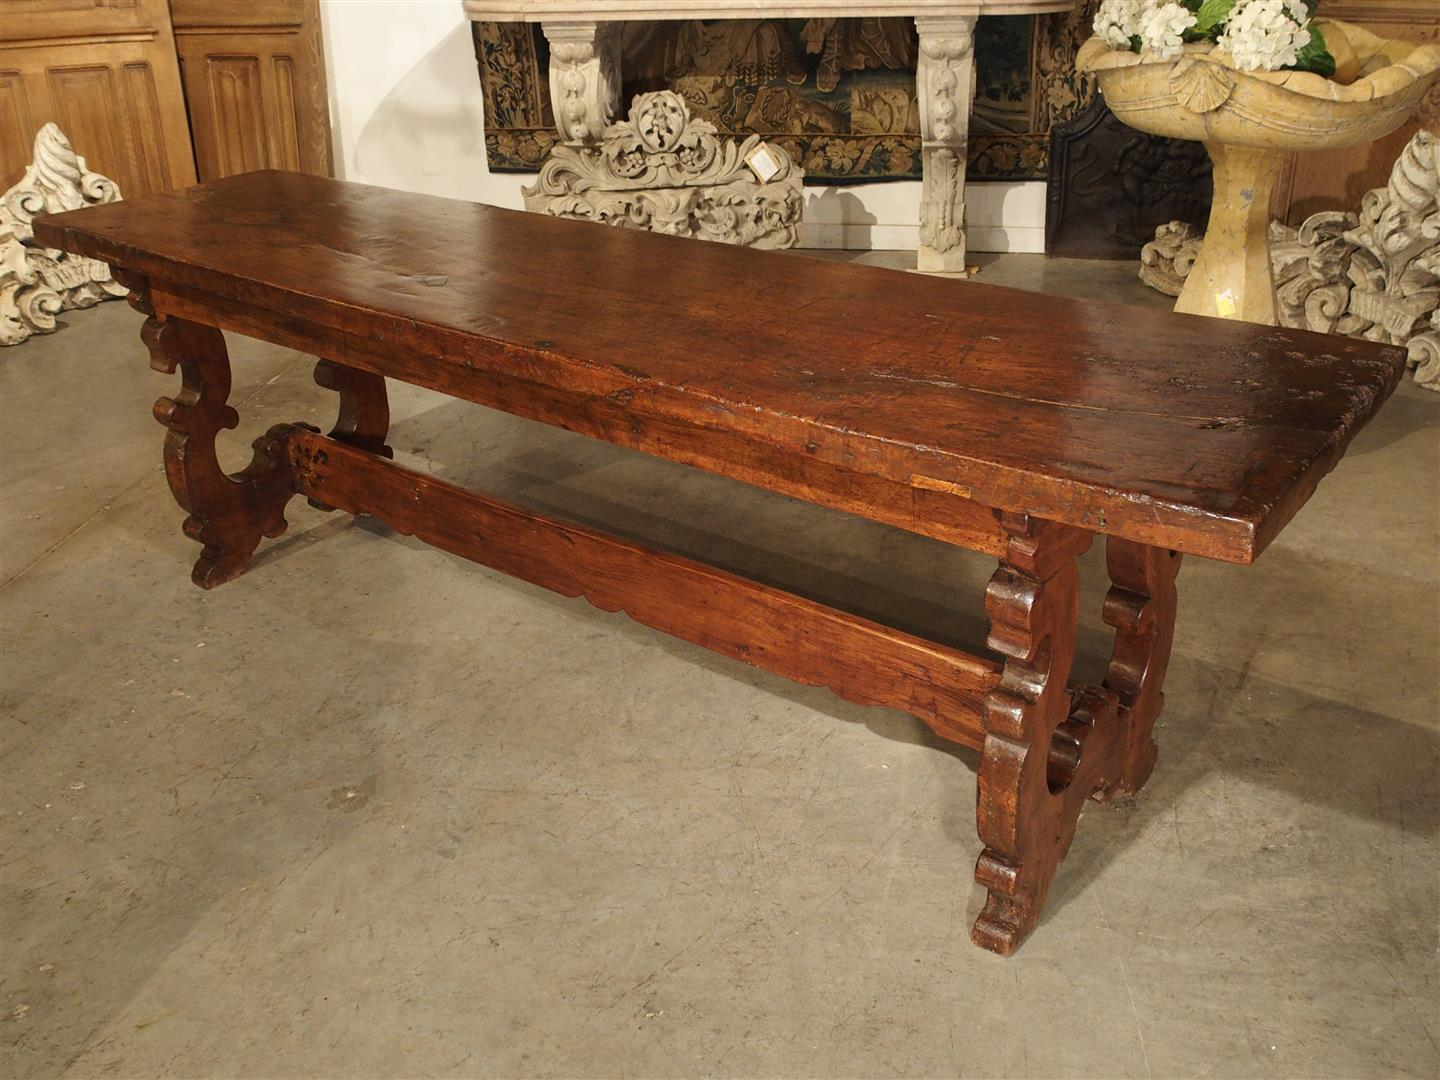 Antique Walnut Wood Console Table from Italy, 1600s